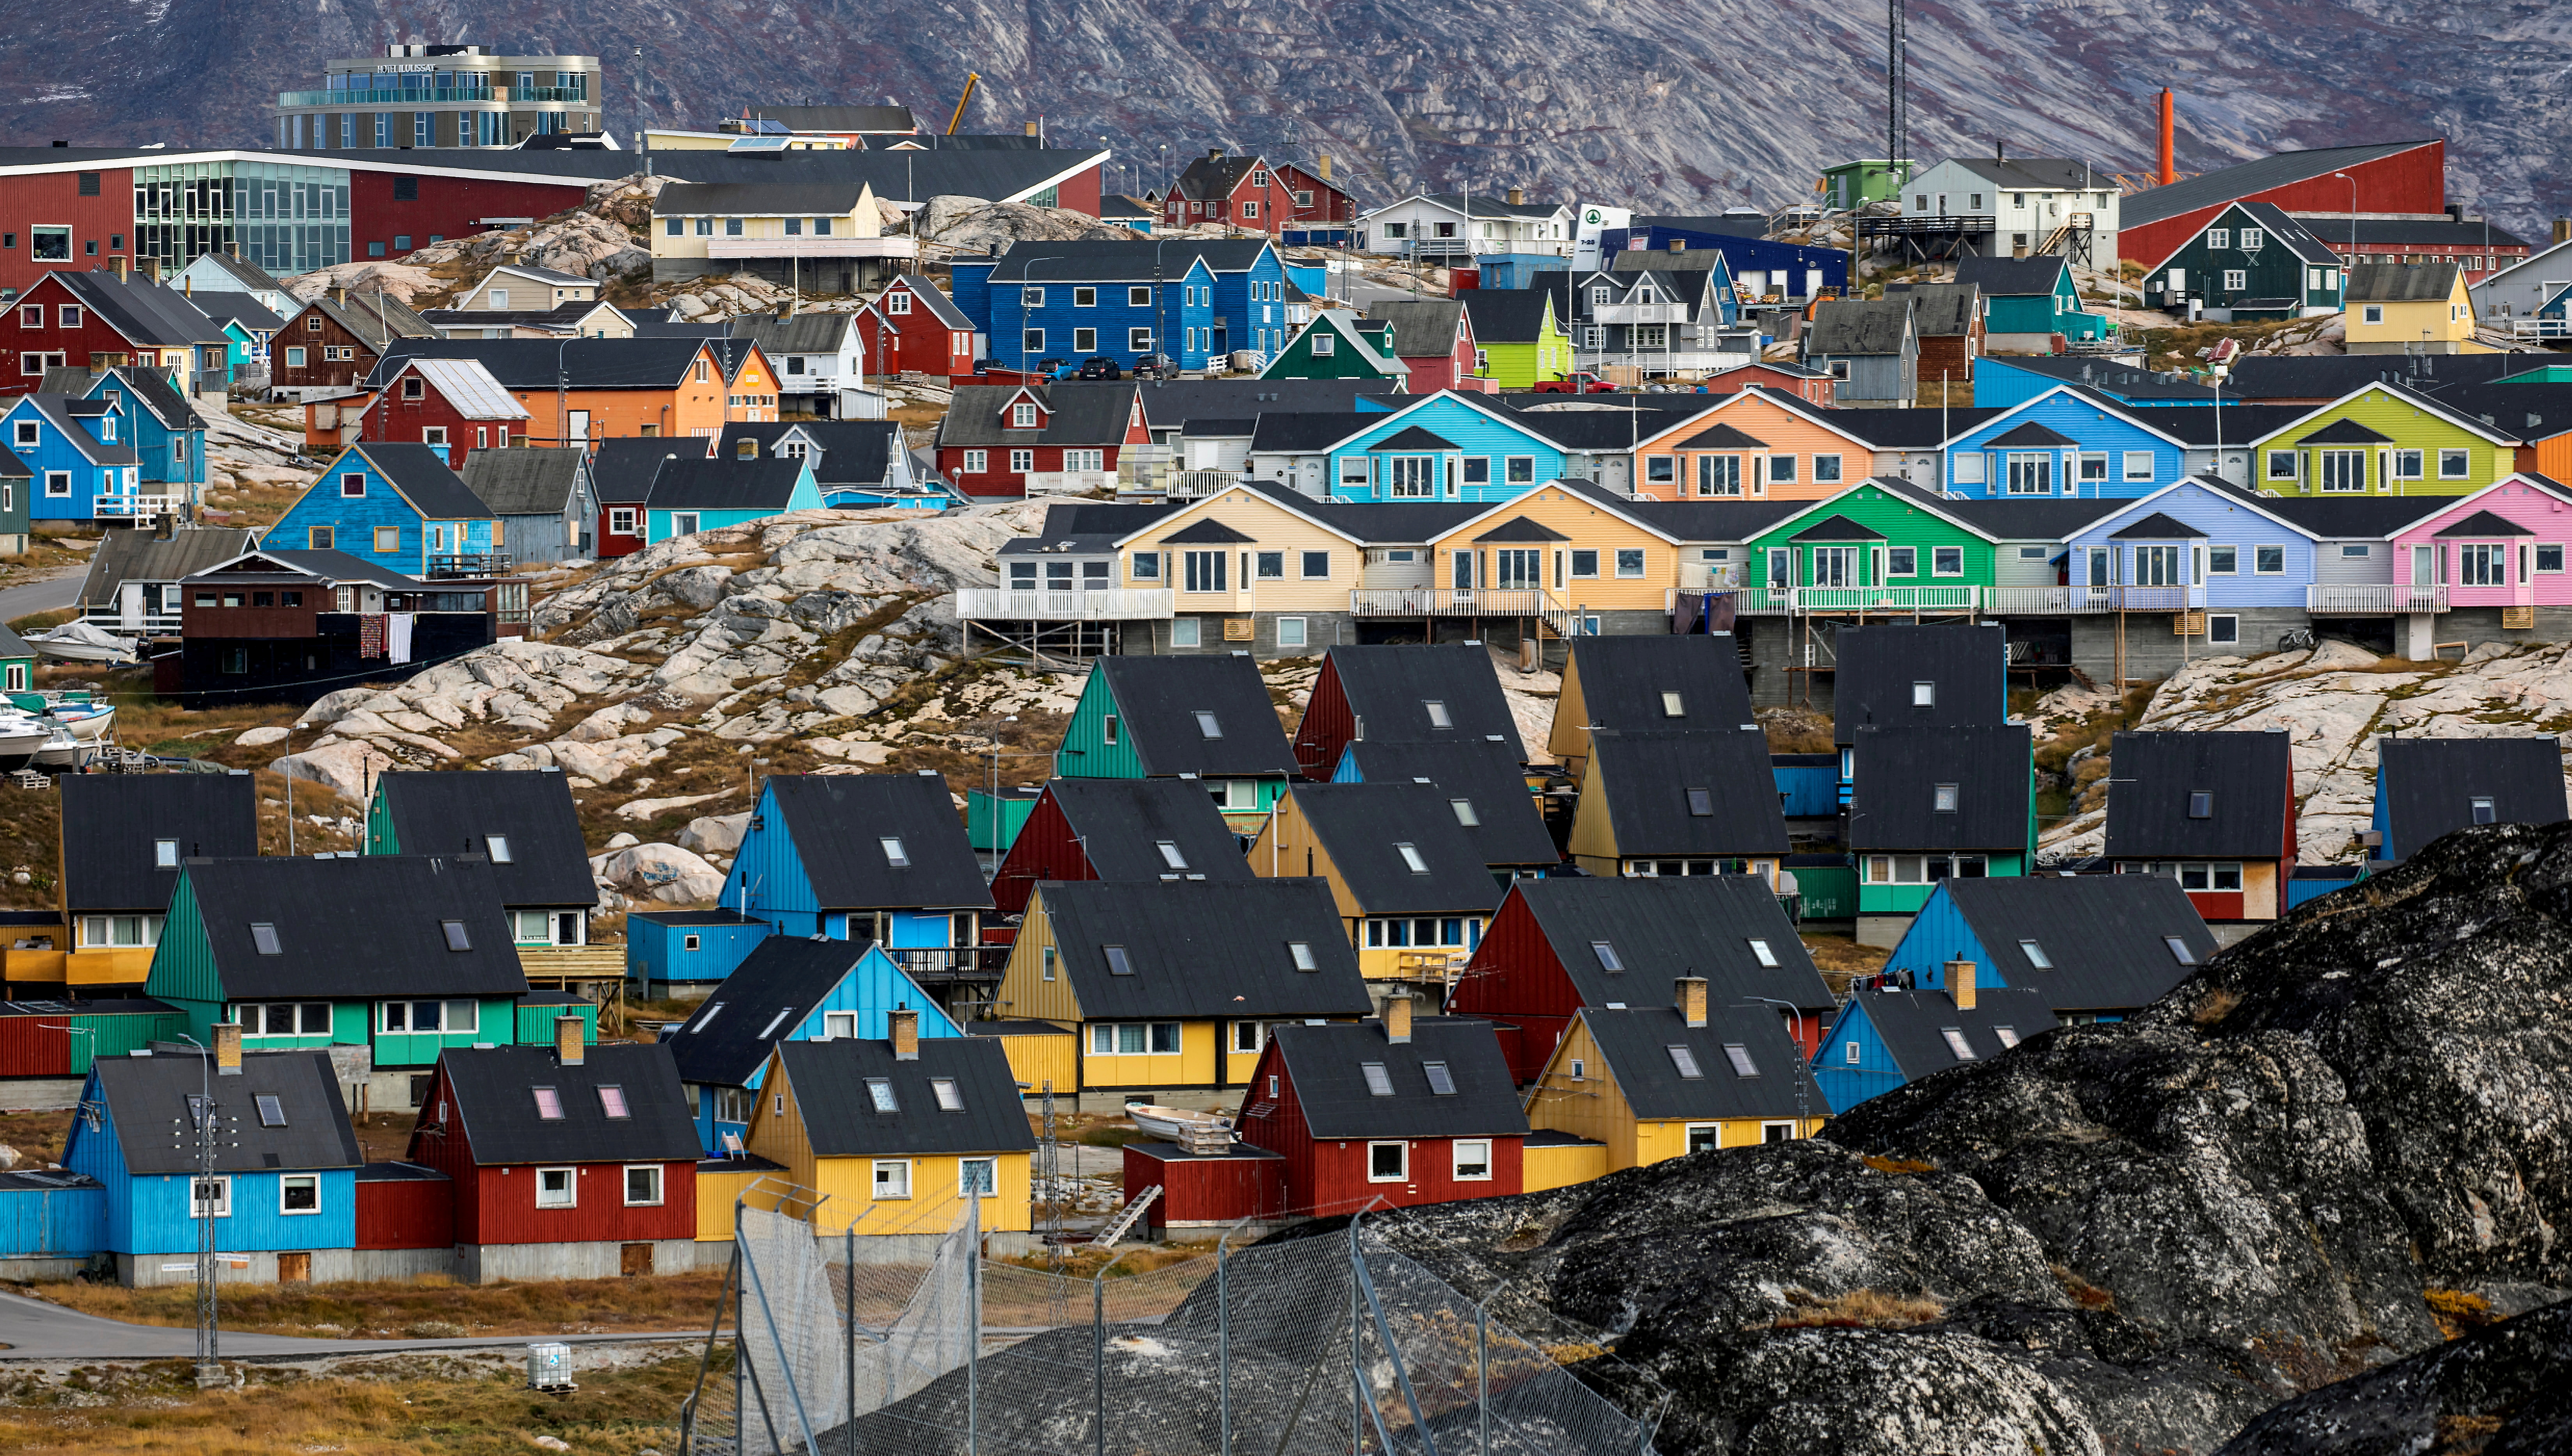 Houses are pictured in Ilulissat, Greenland, September 14, 2021.  REUTERS/Hannibal Hanschke